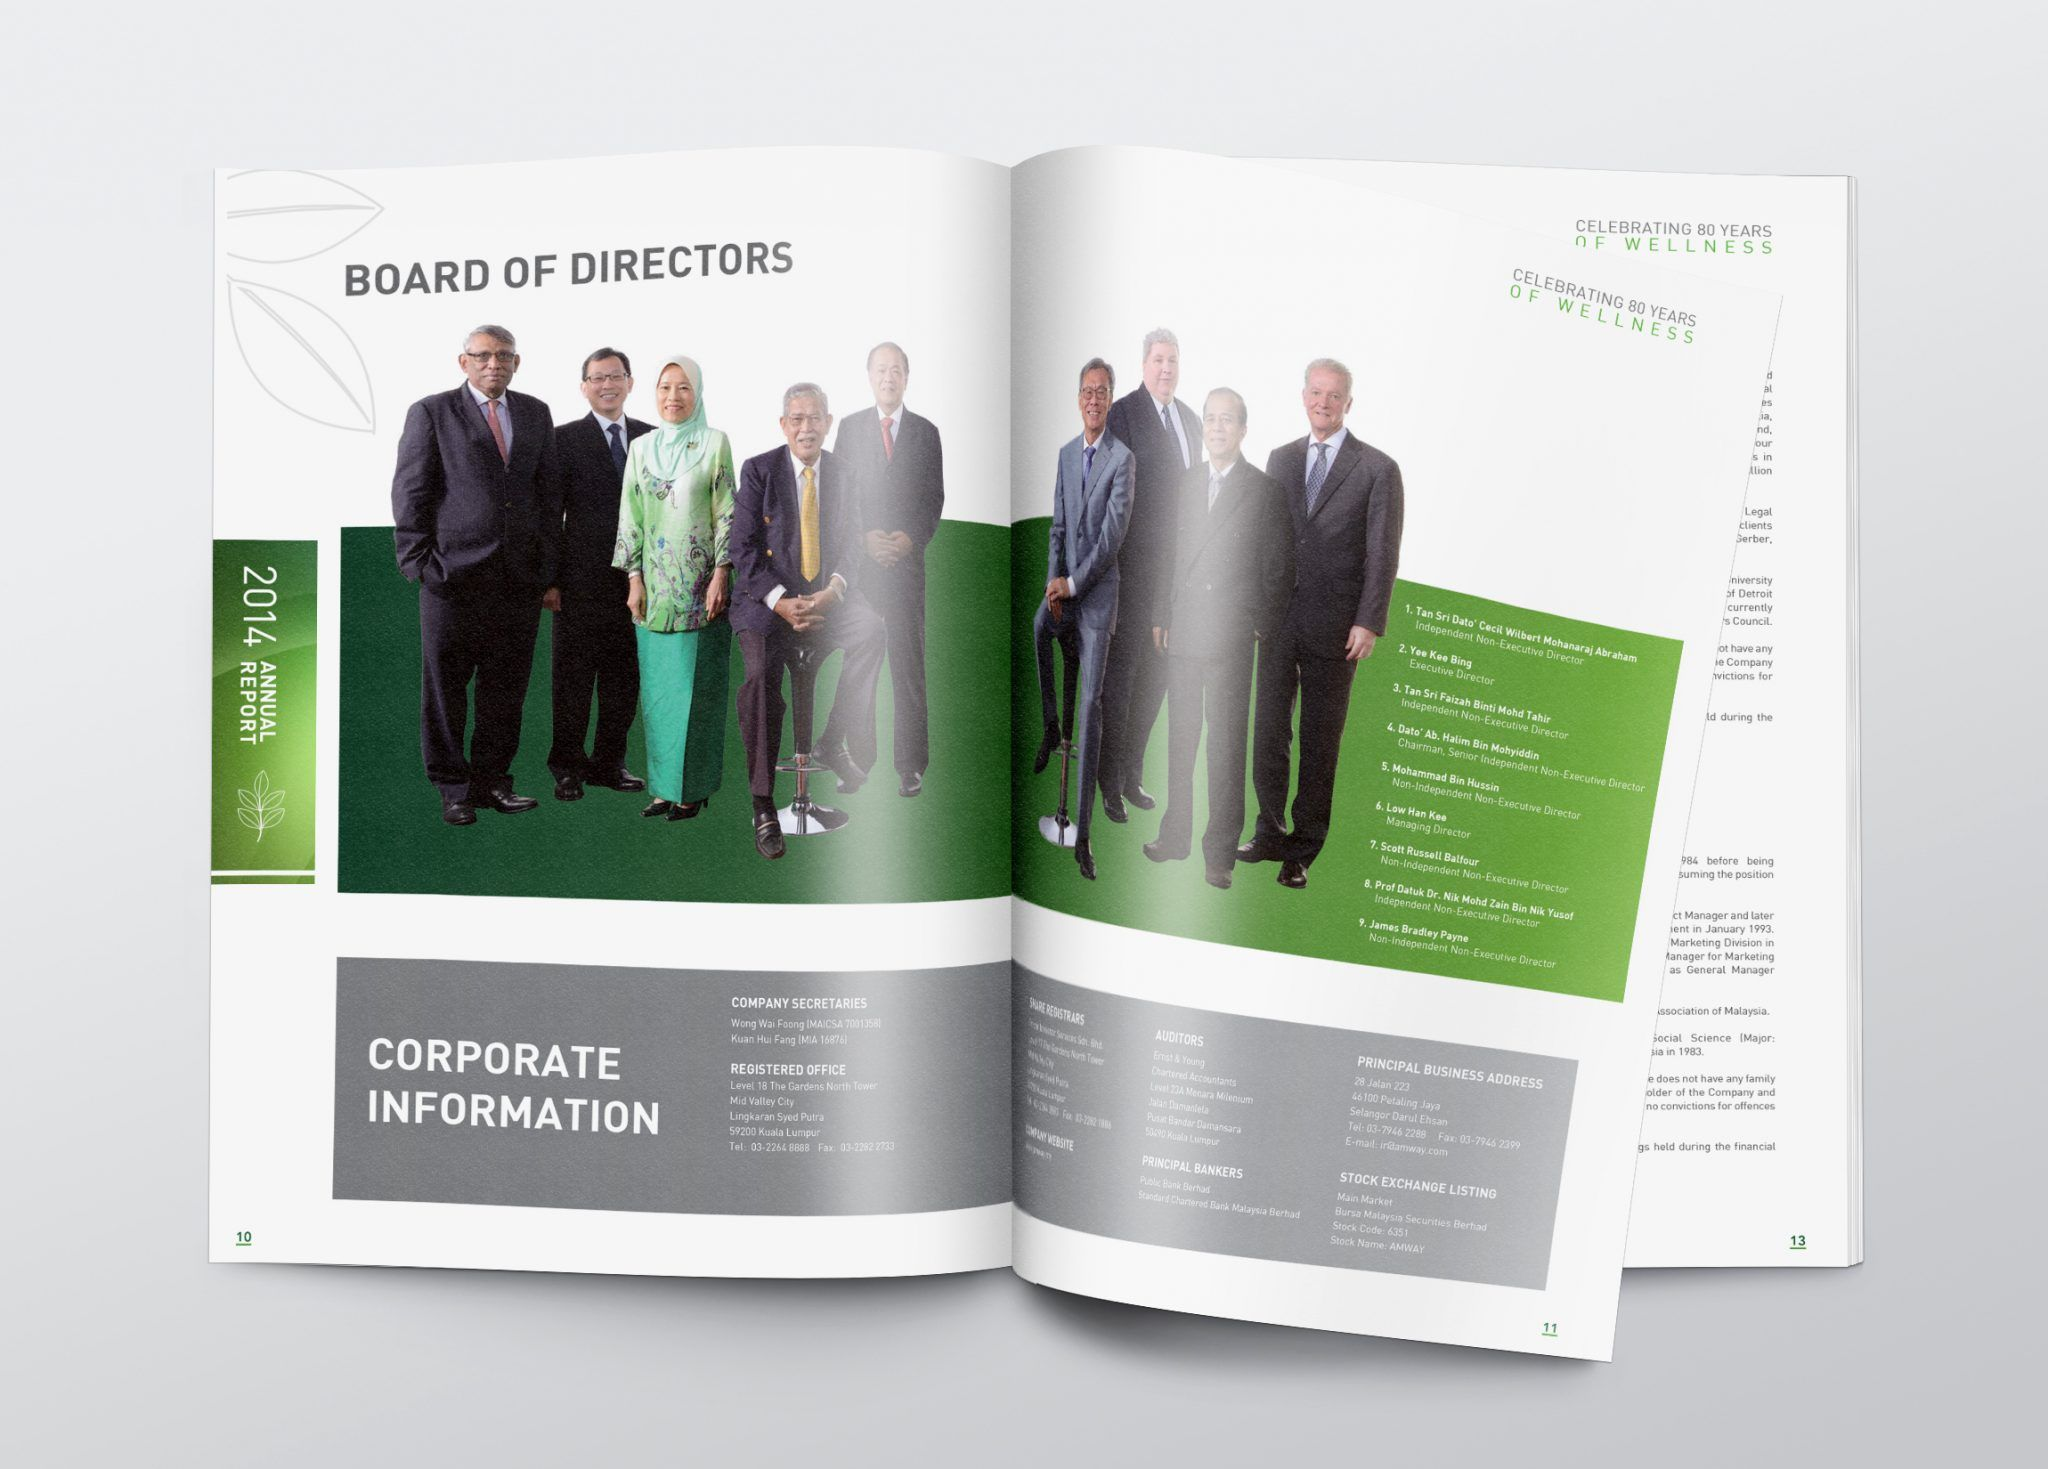 amway magazine board of directors creative graphic design page